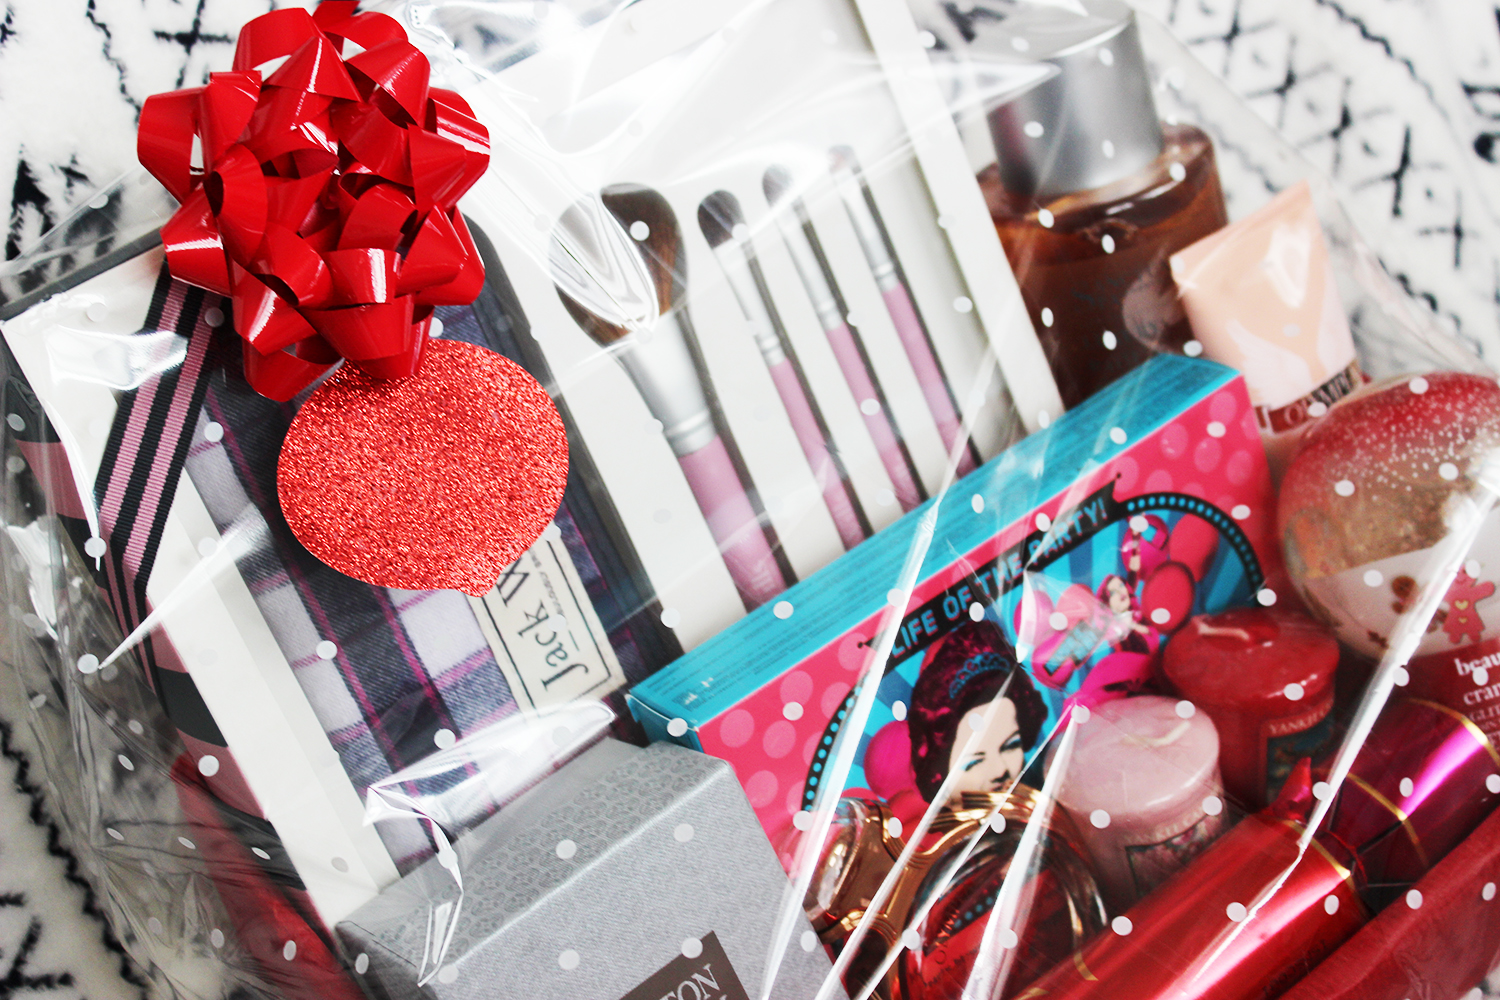 How to make a diy beauty hamper with a little help from Boots - the finished product